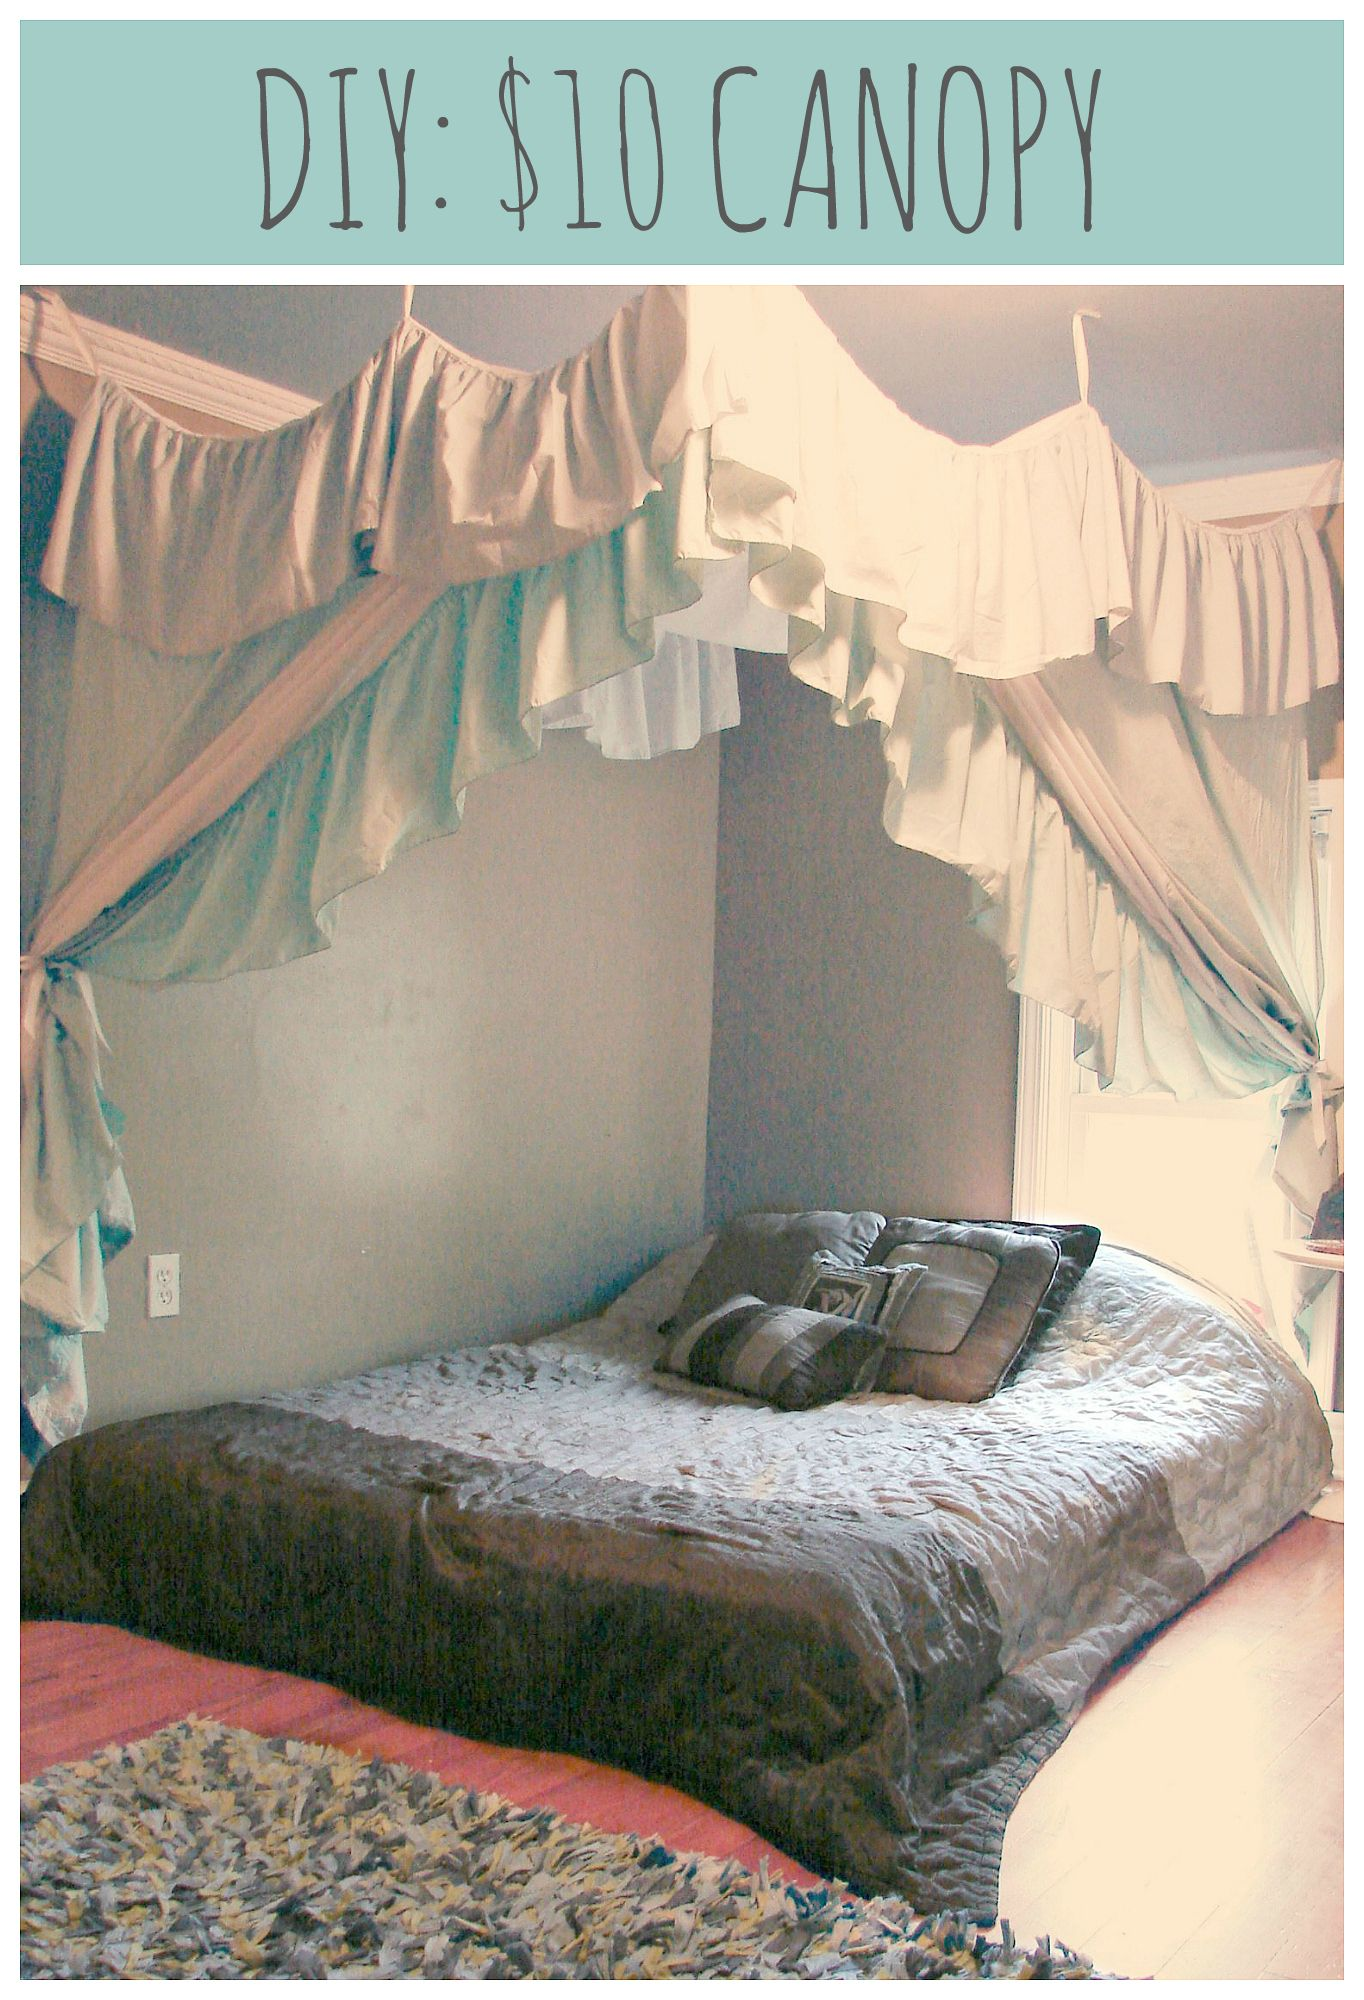 diy: $10, 1 hour canopy: 2 bed sheets, 2 bed skirts, a spool of